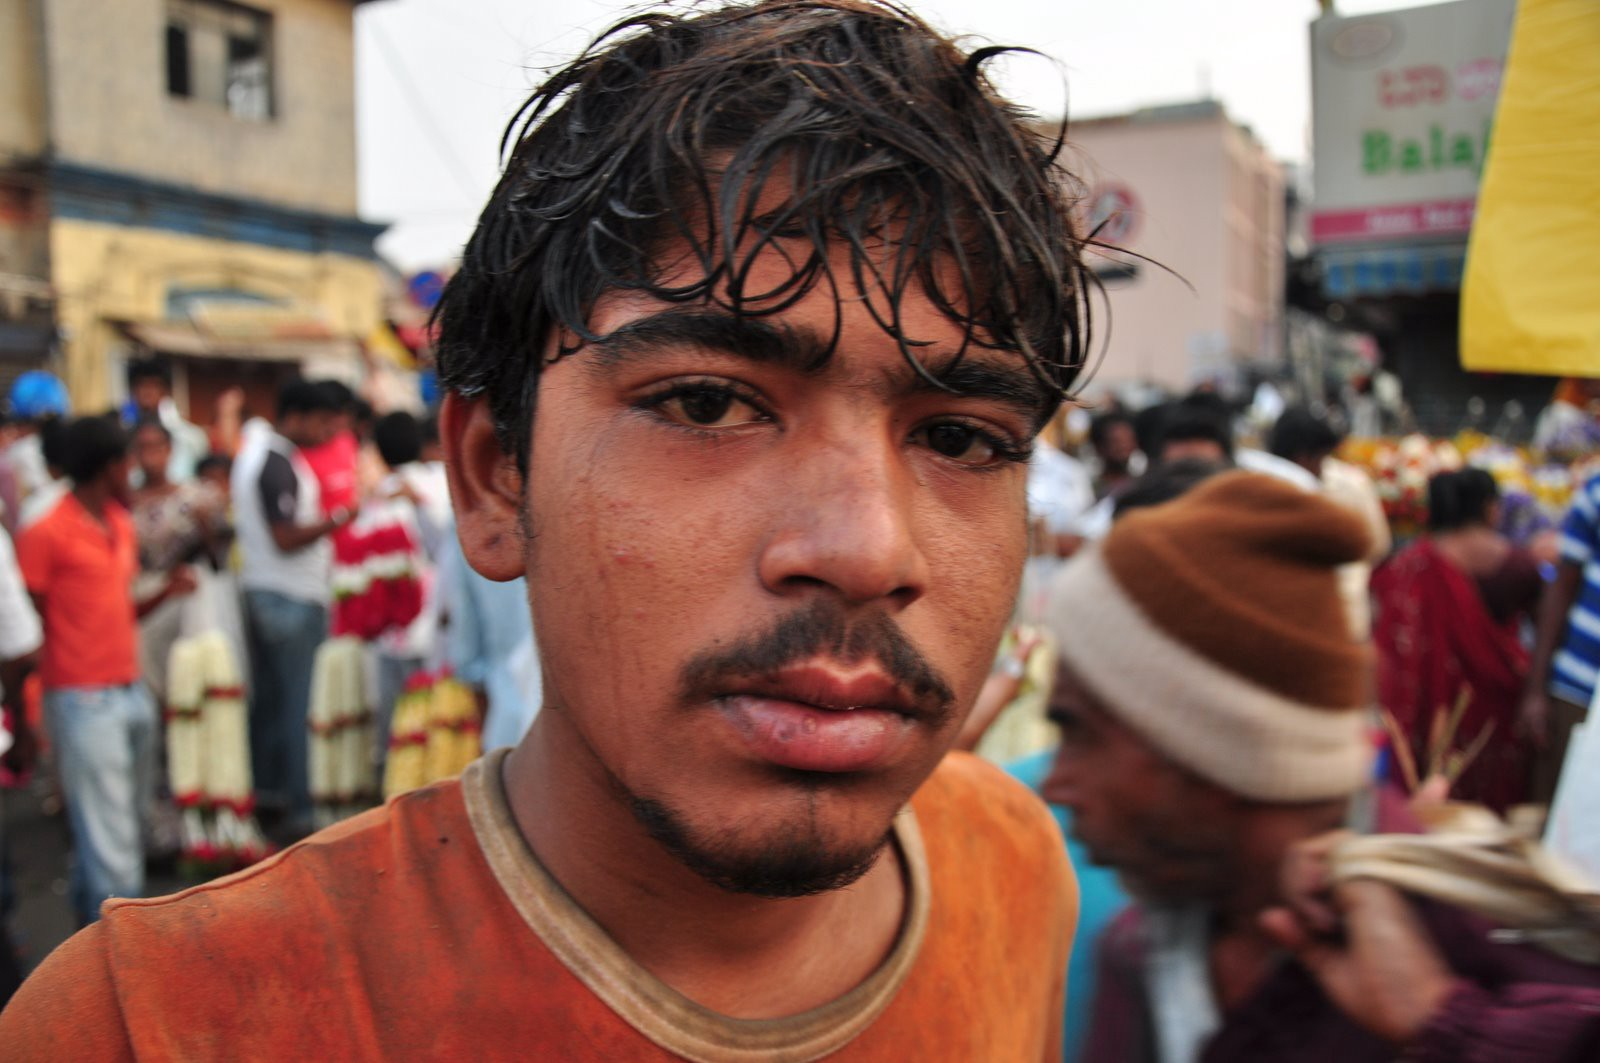 Labouror posing for a picture at the market in Bangalore